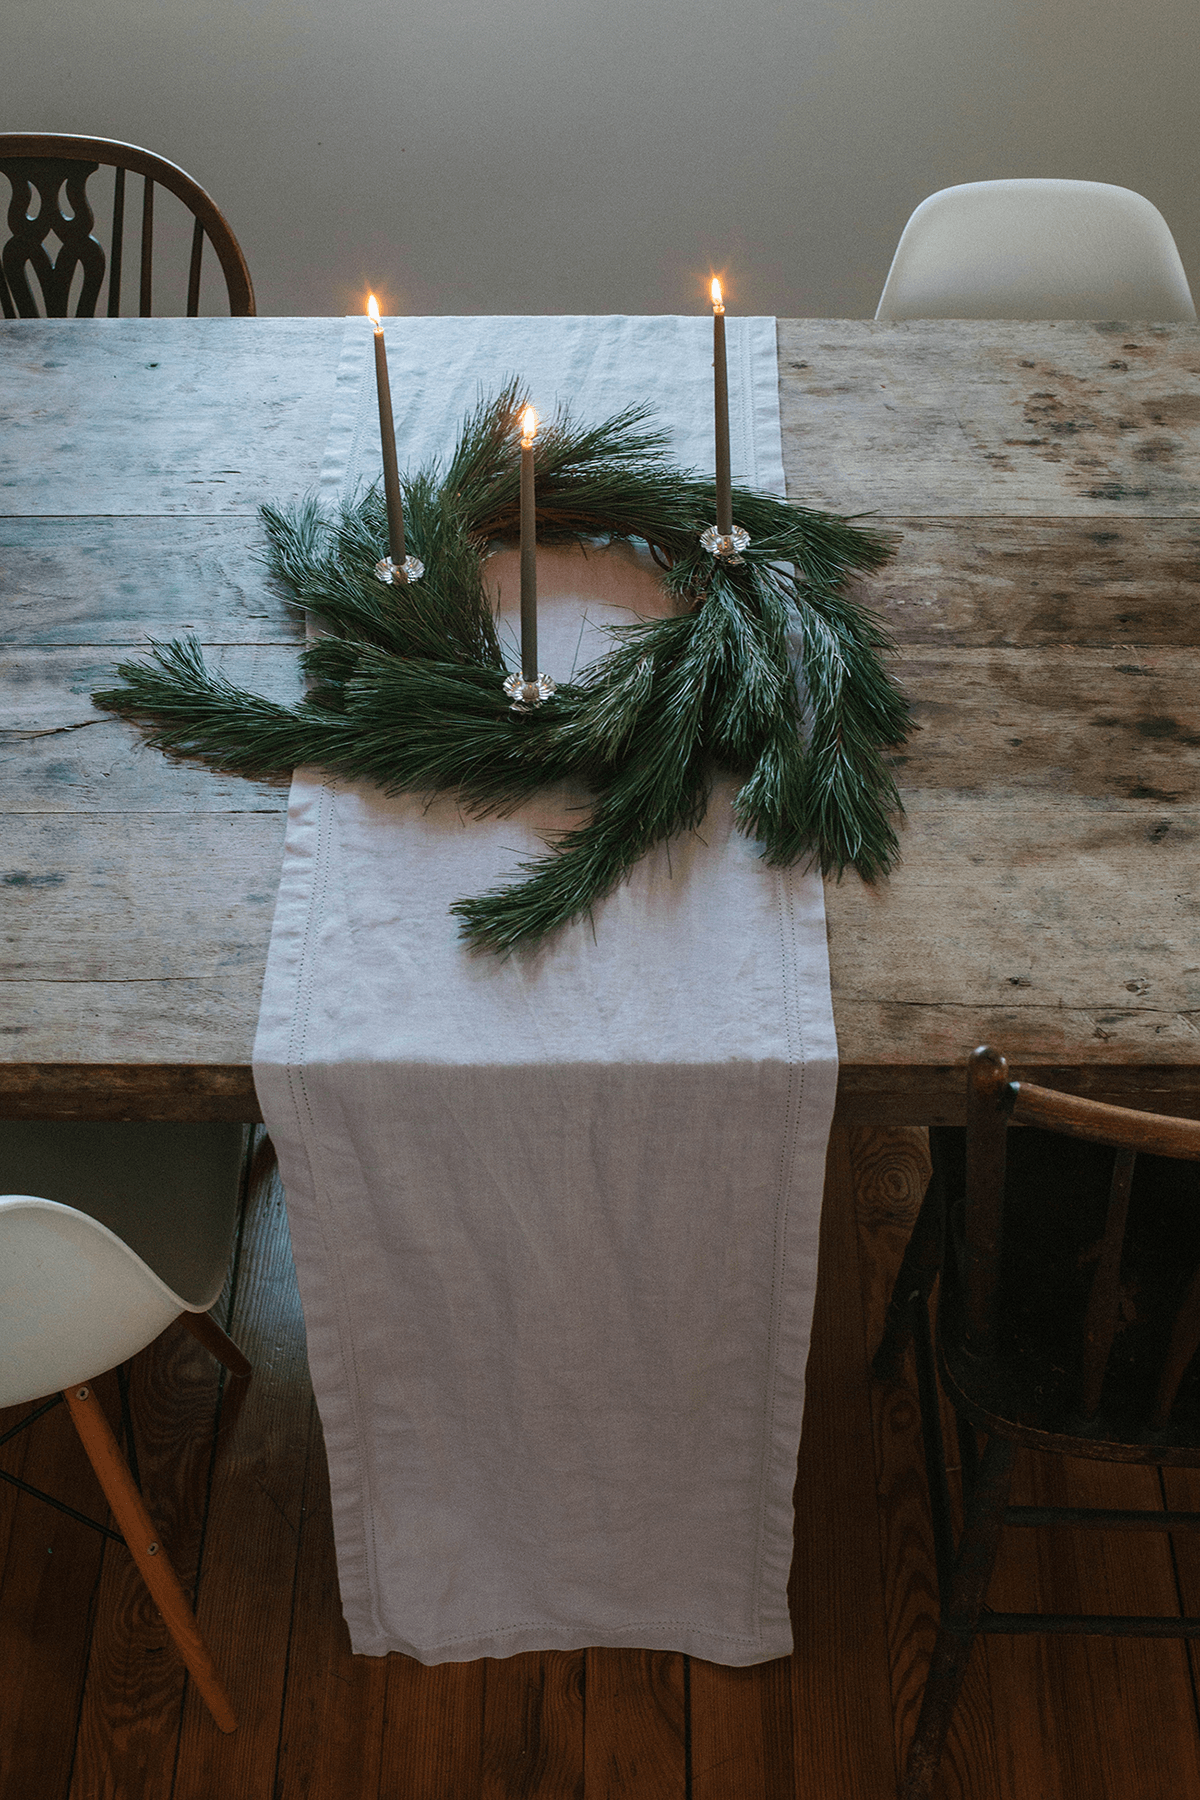 A Simple Arrangement of Wreath and Candles